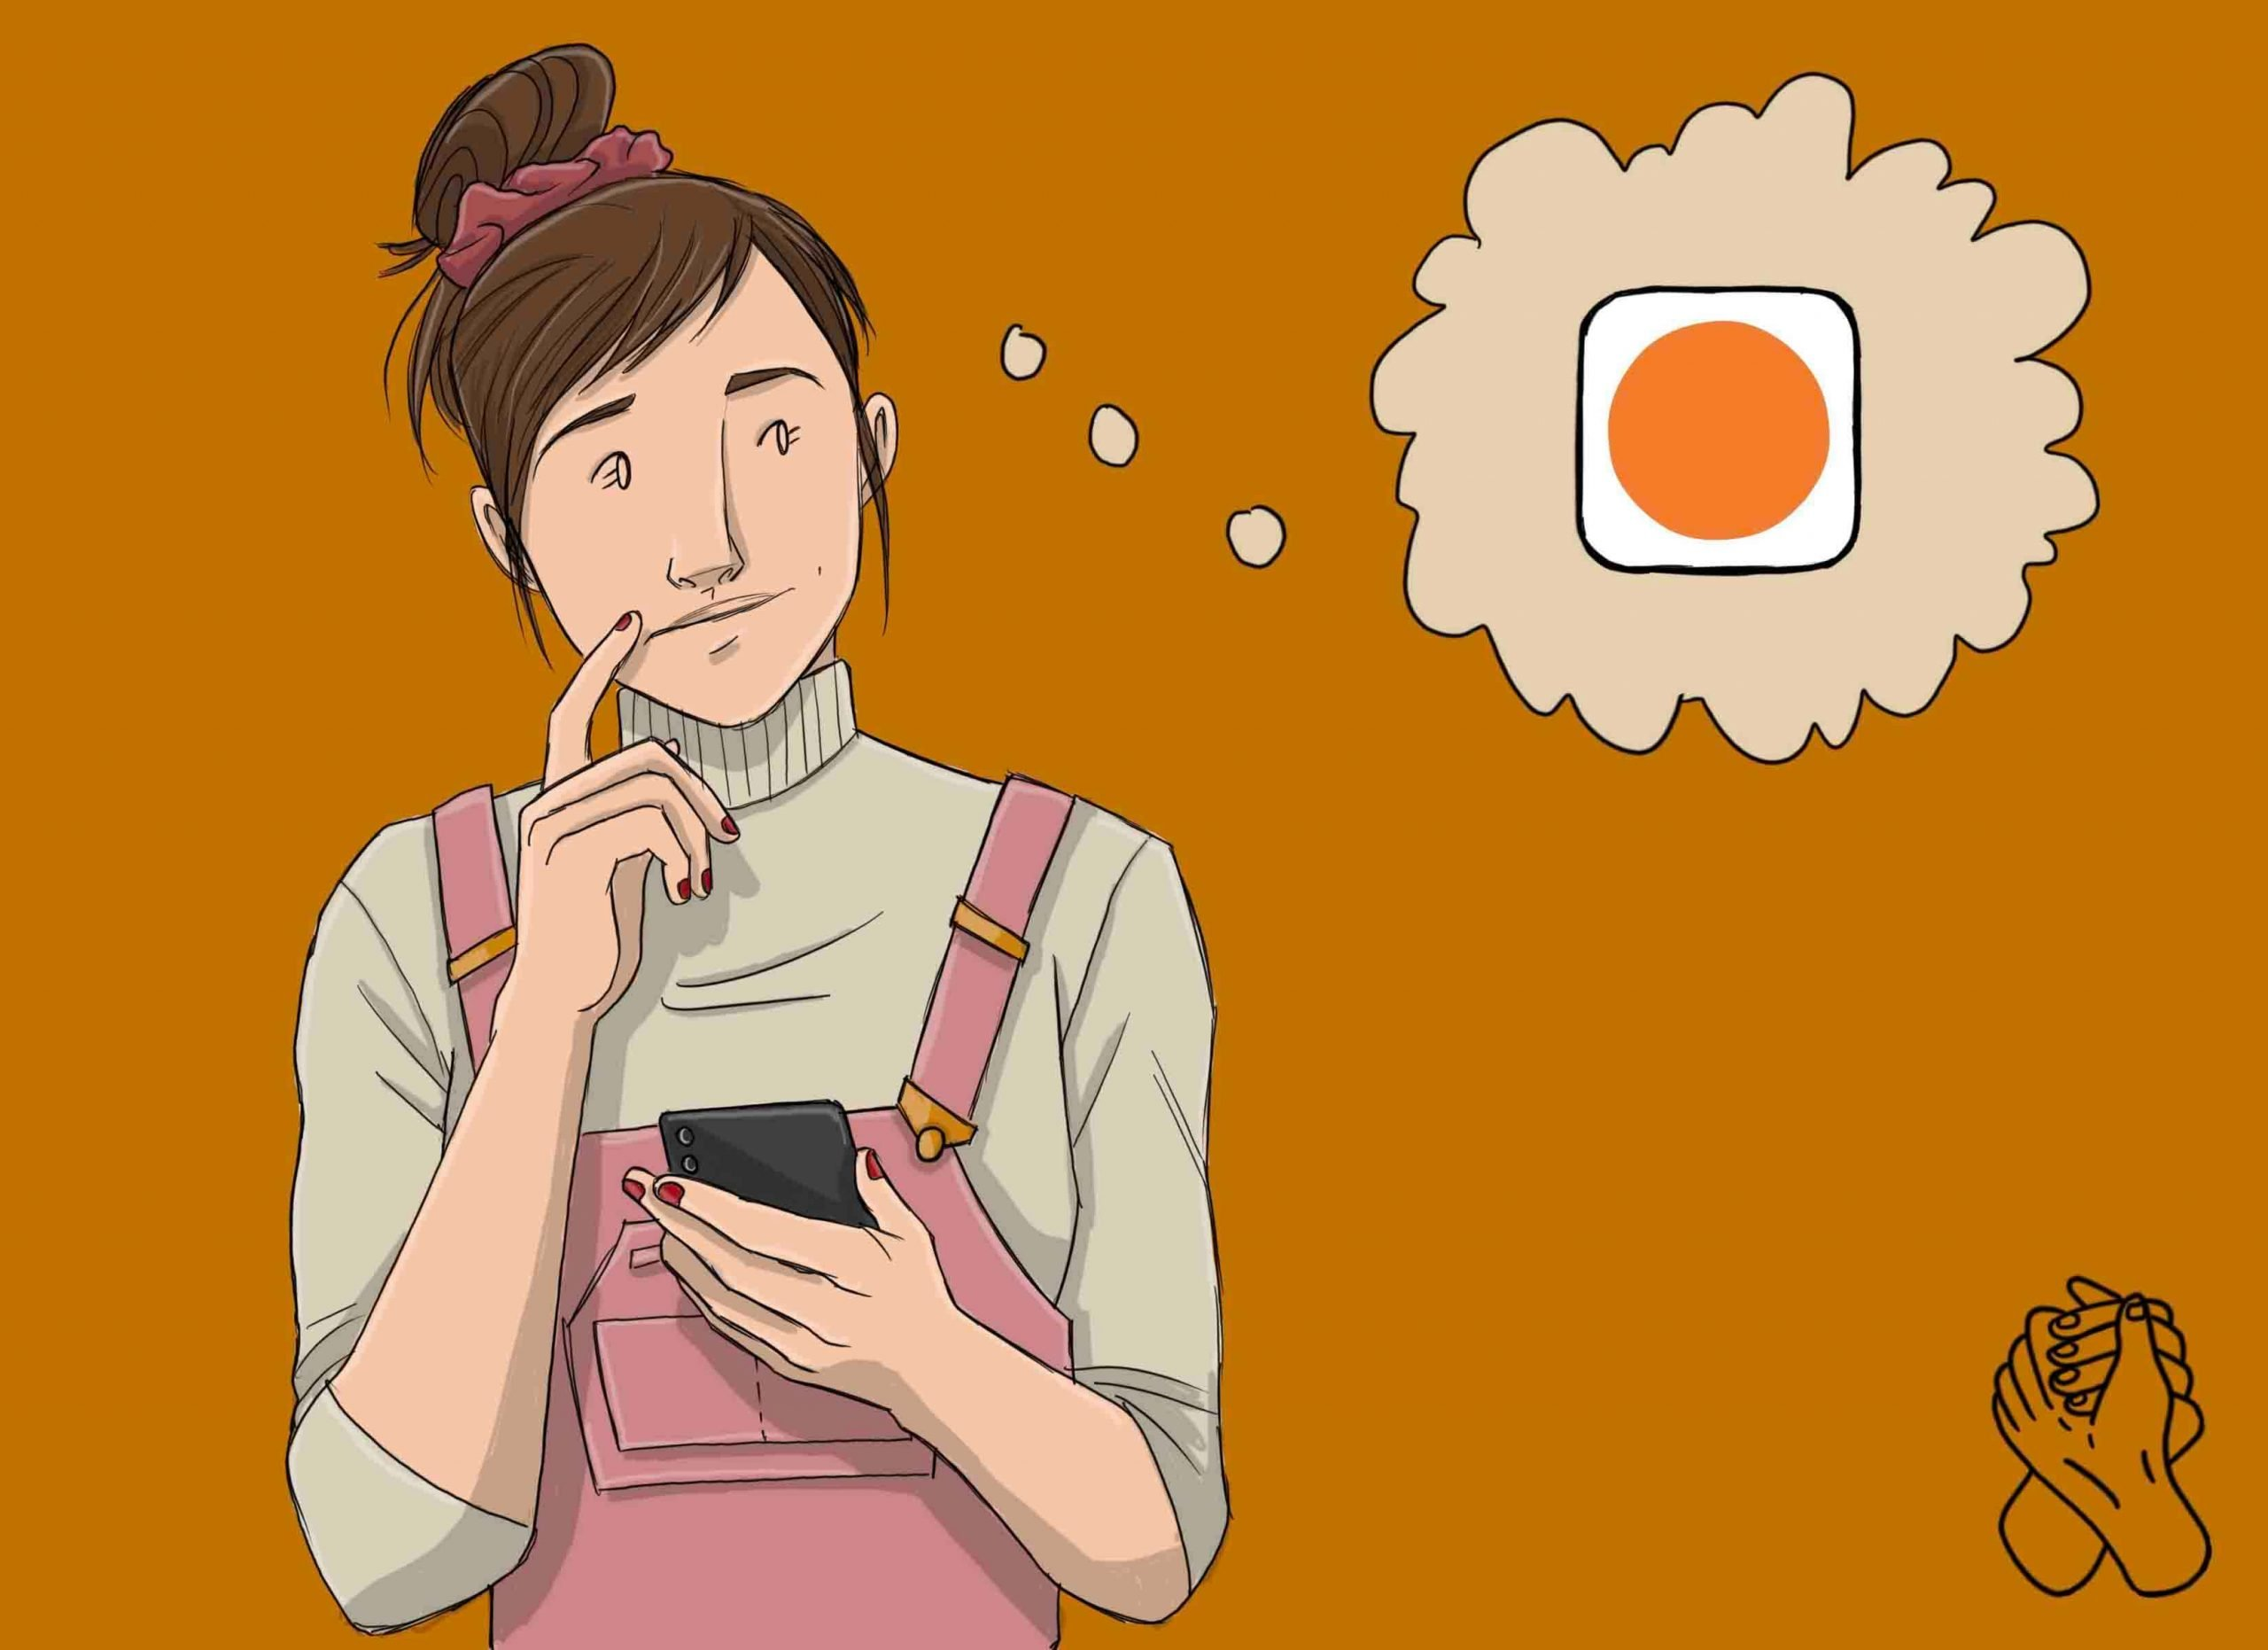 This is a drawing of a girl using the headspace app